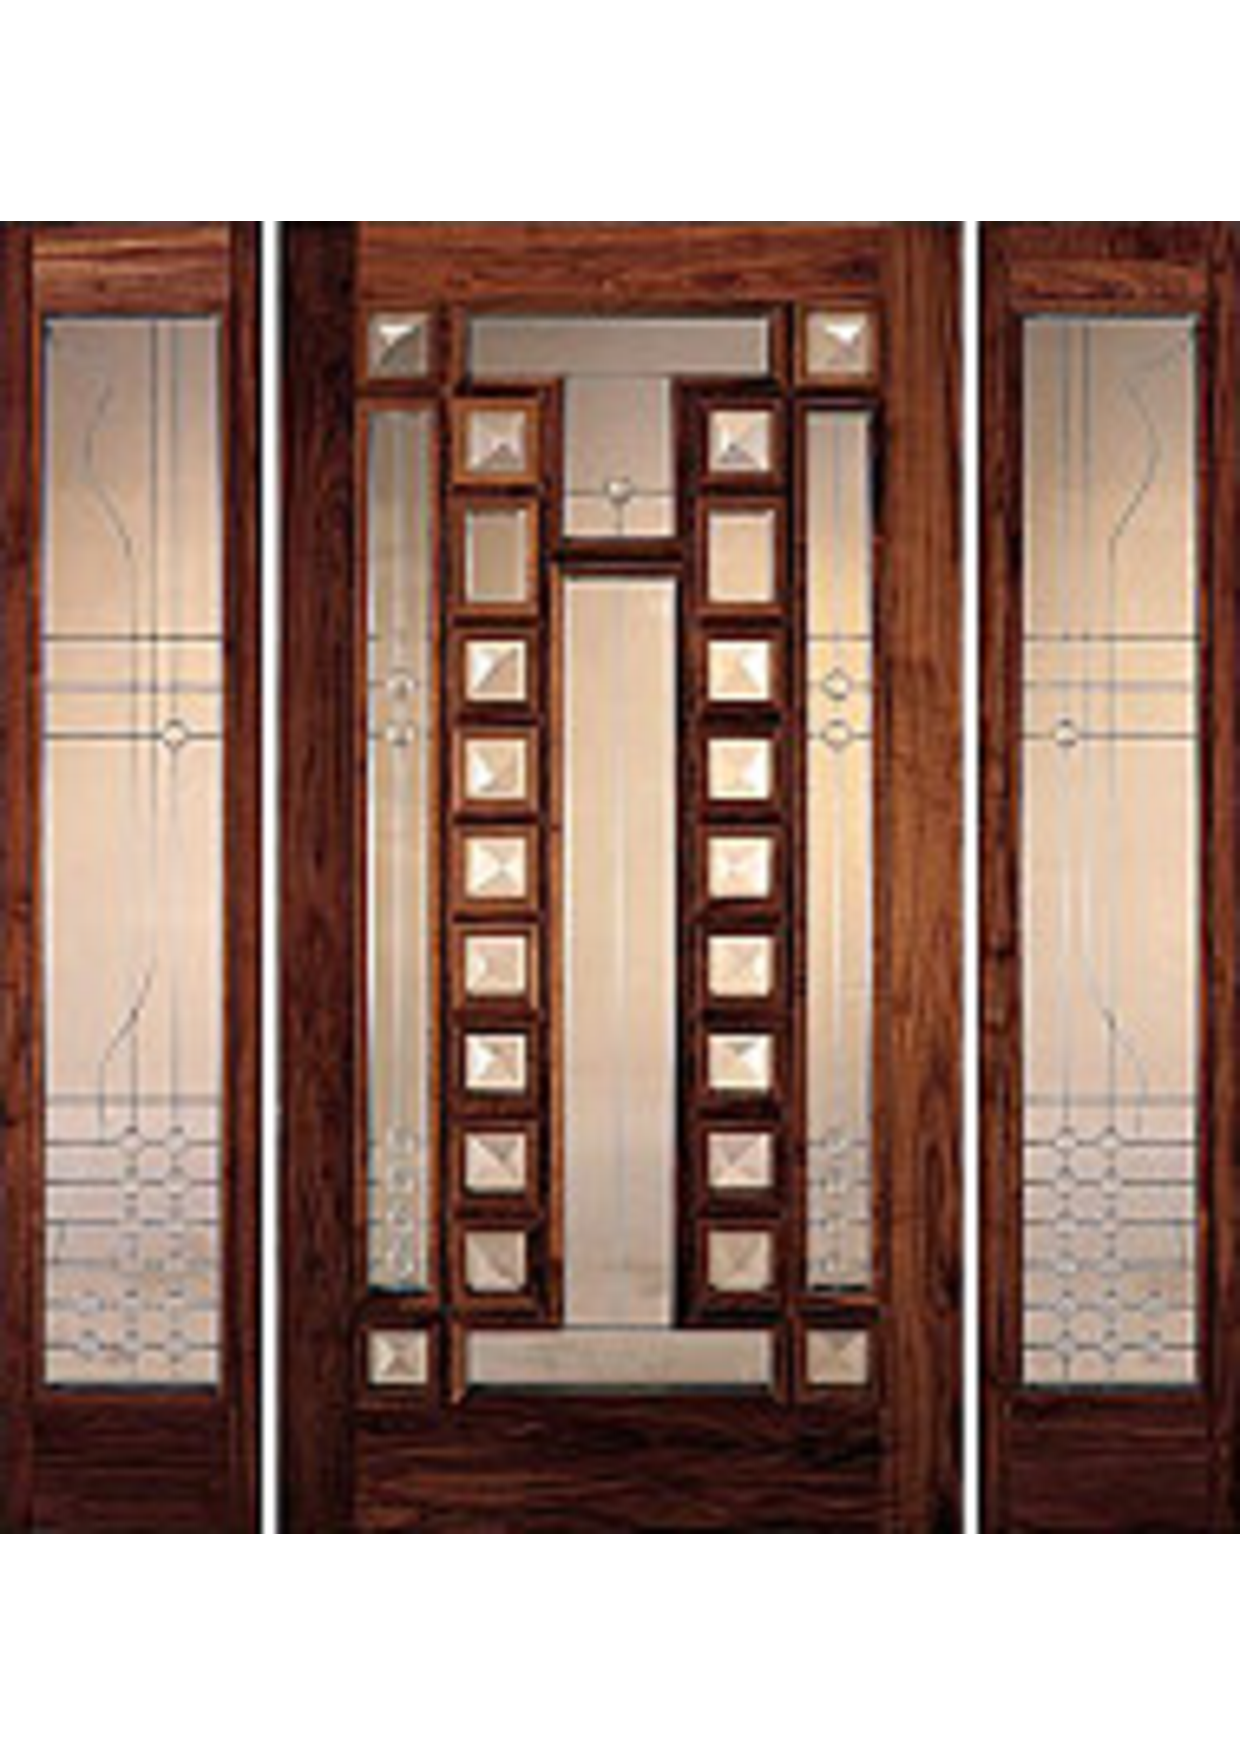 Living room door designs in india nakicphotography for Living room door designs